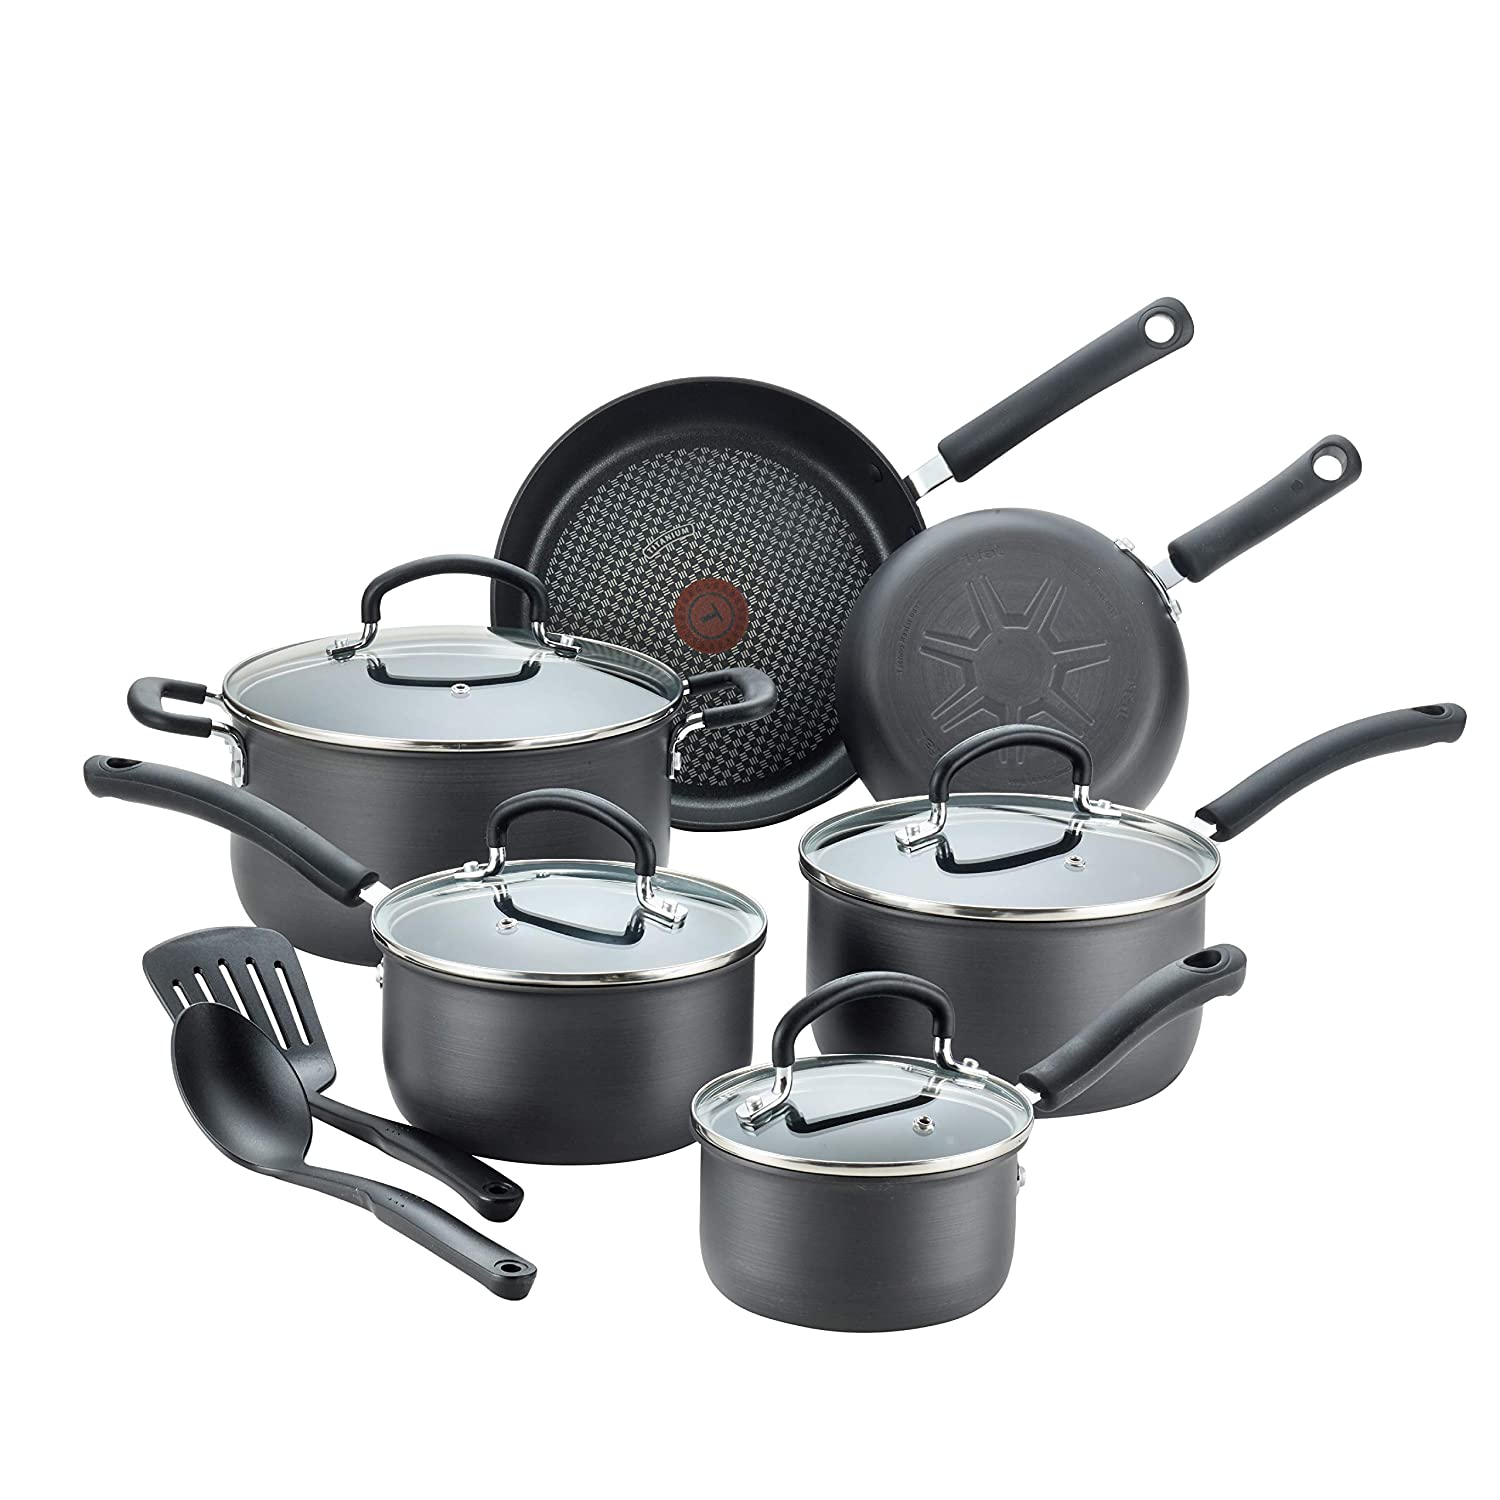 T-fal E918SC Ultimate Hard Anodized Durable Nonstick